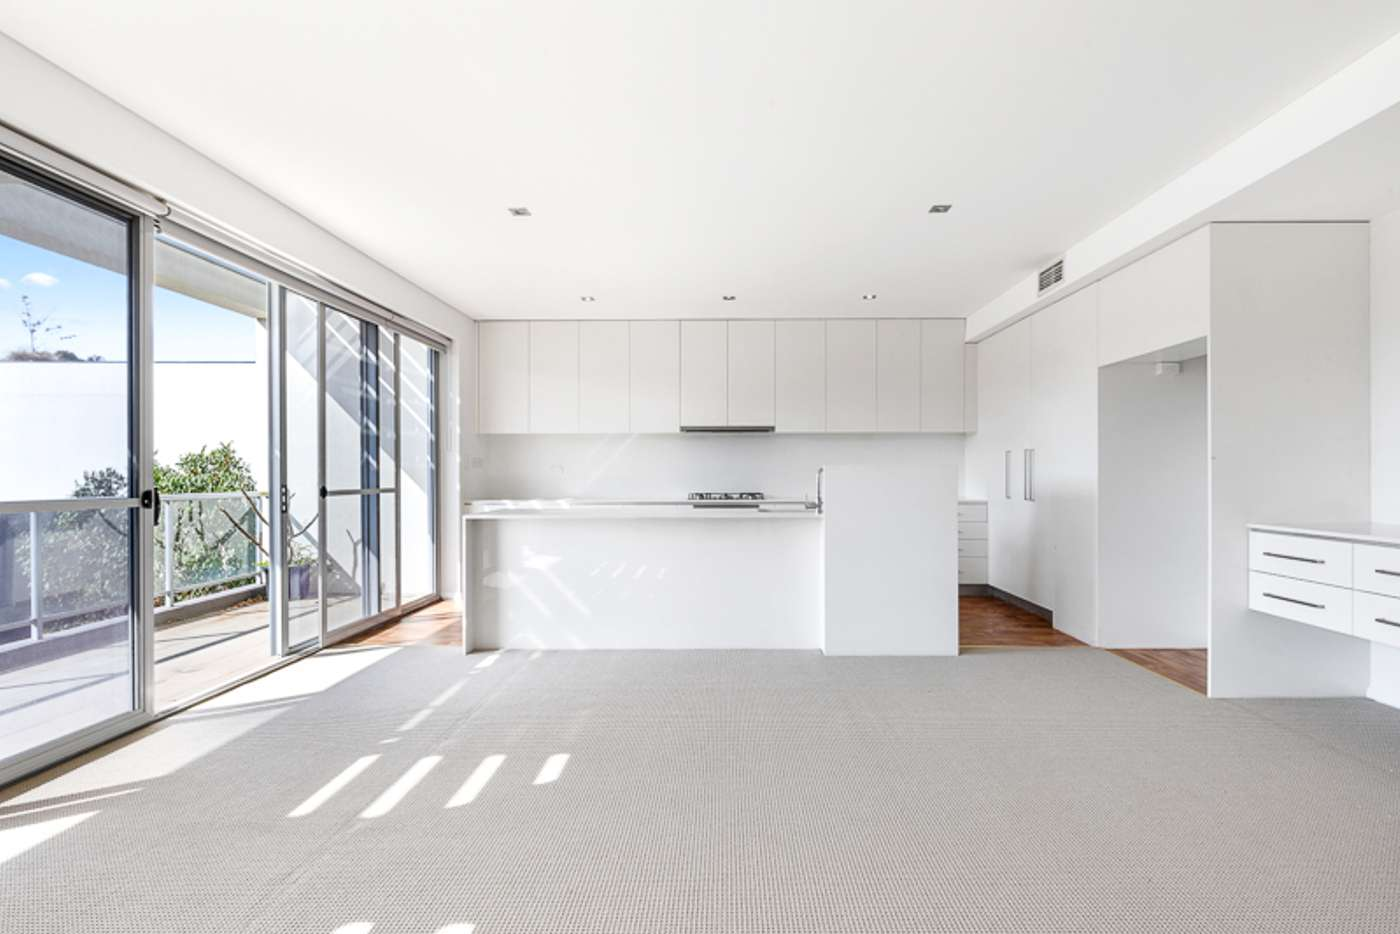 Main view of Homely apartment listing, 23/8 Allen Street, Waterloo NSW 2017